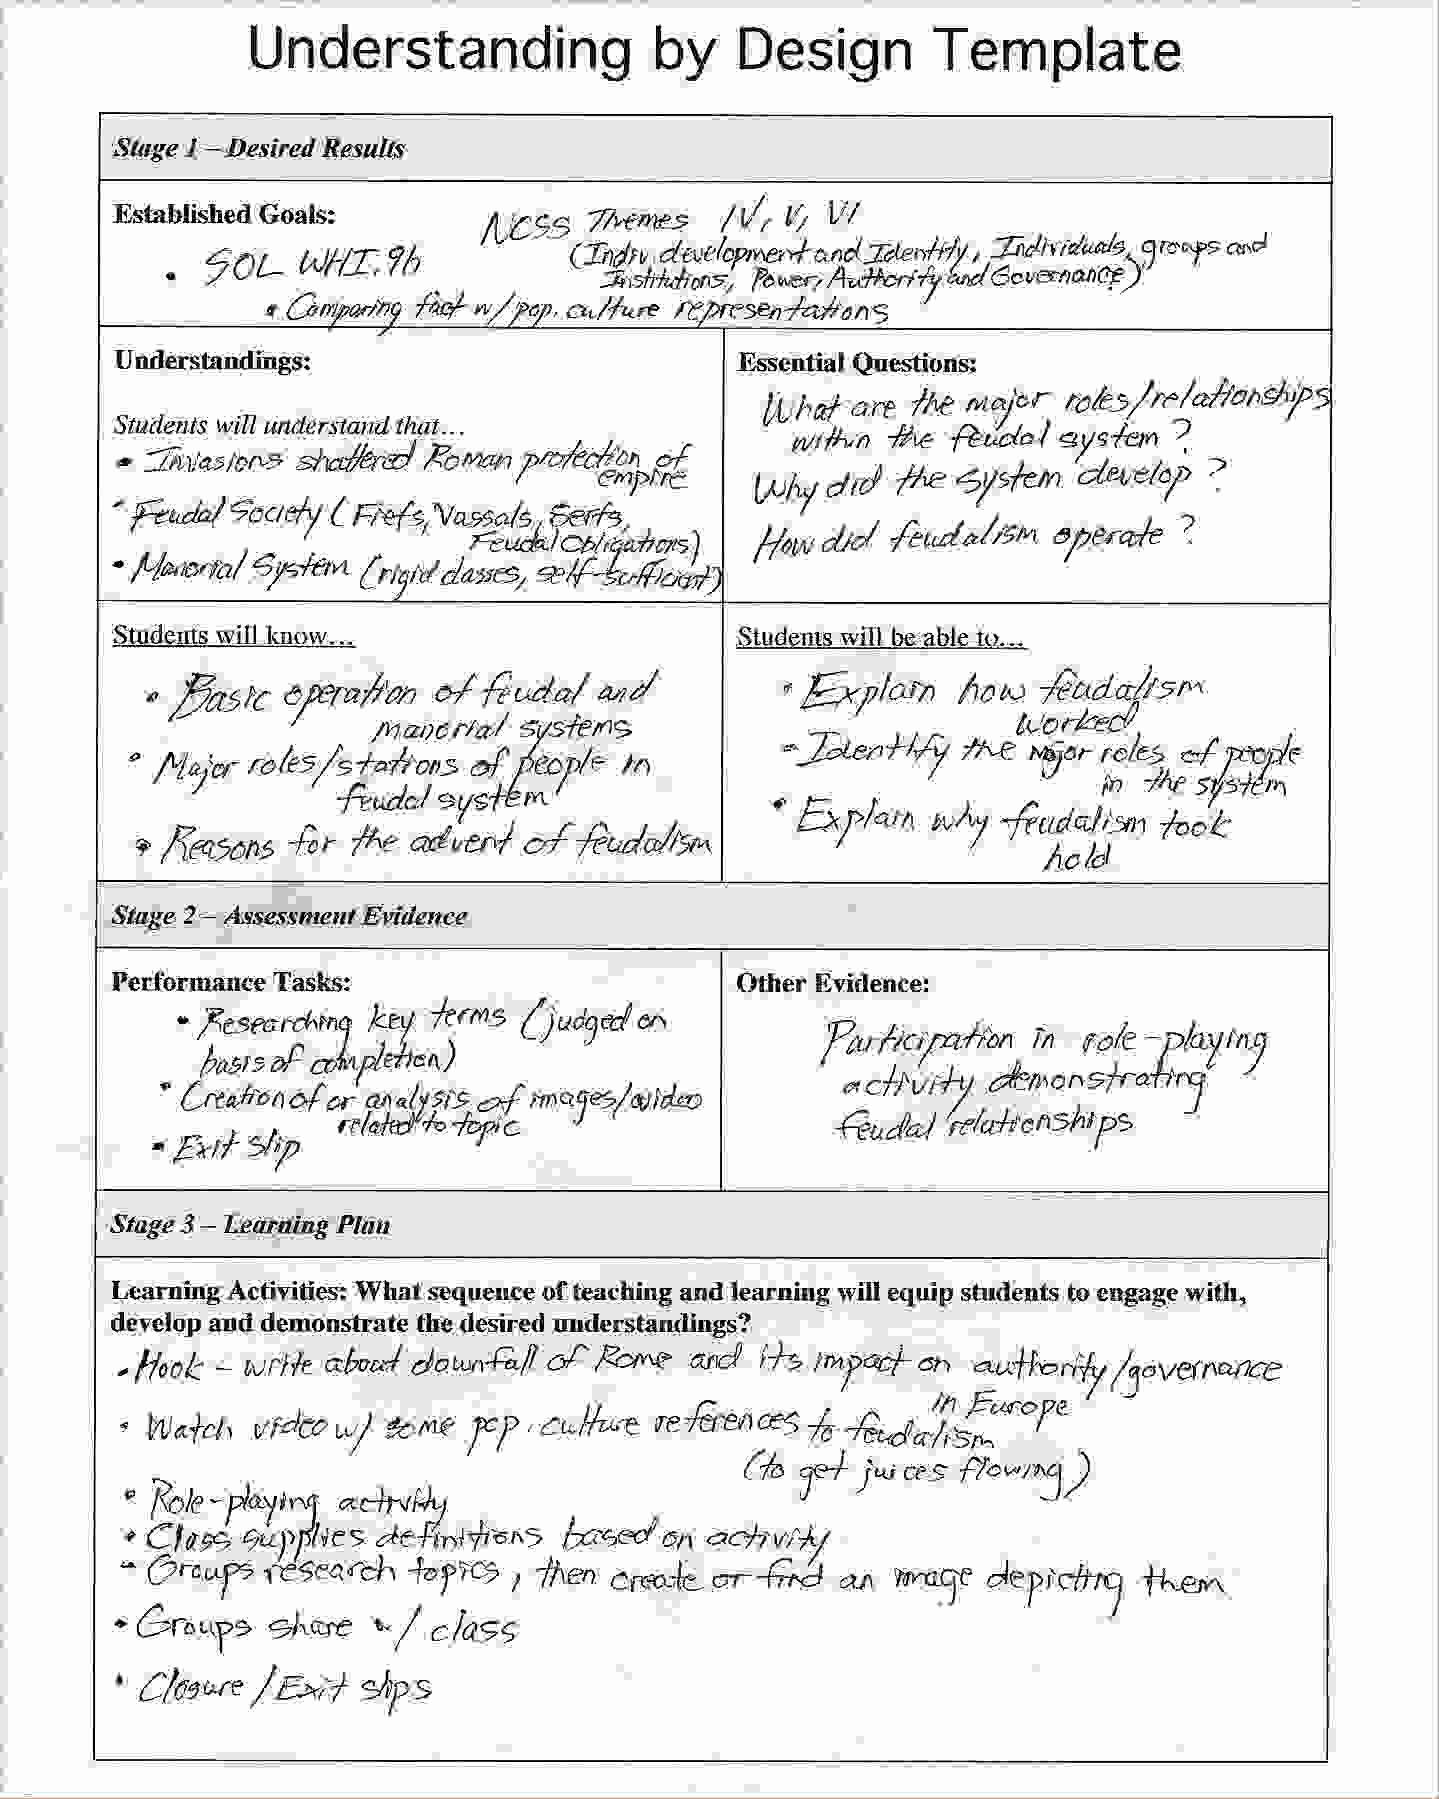 Lesson Plan Template Doc Lovely Understanding by Design Template